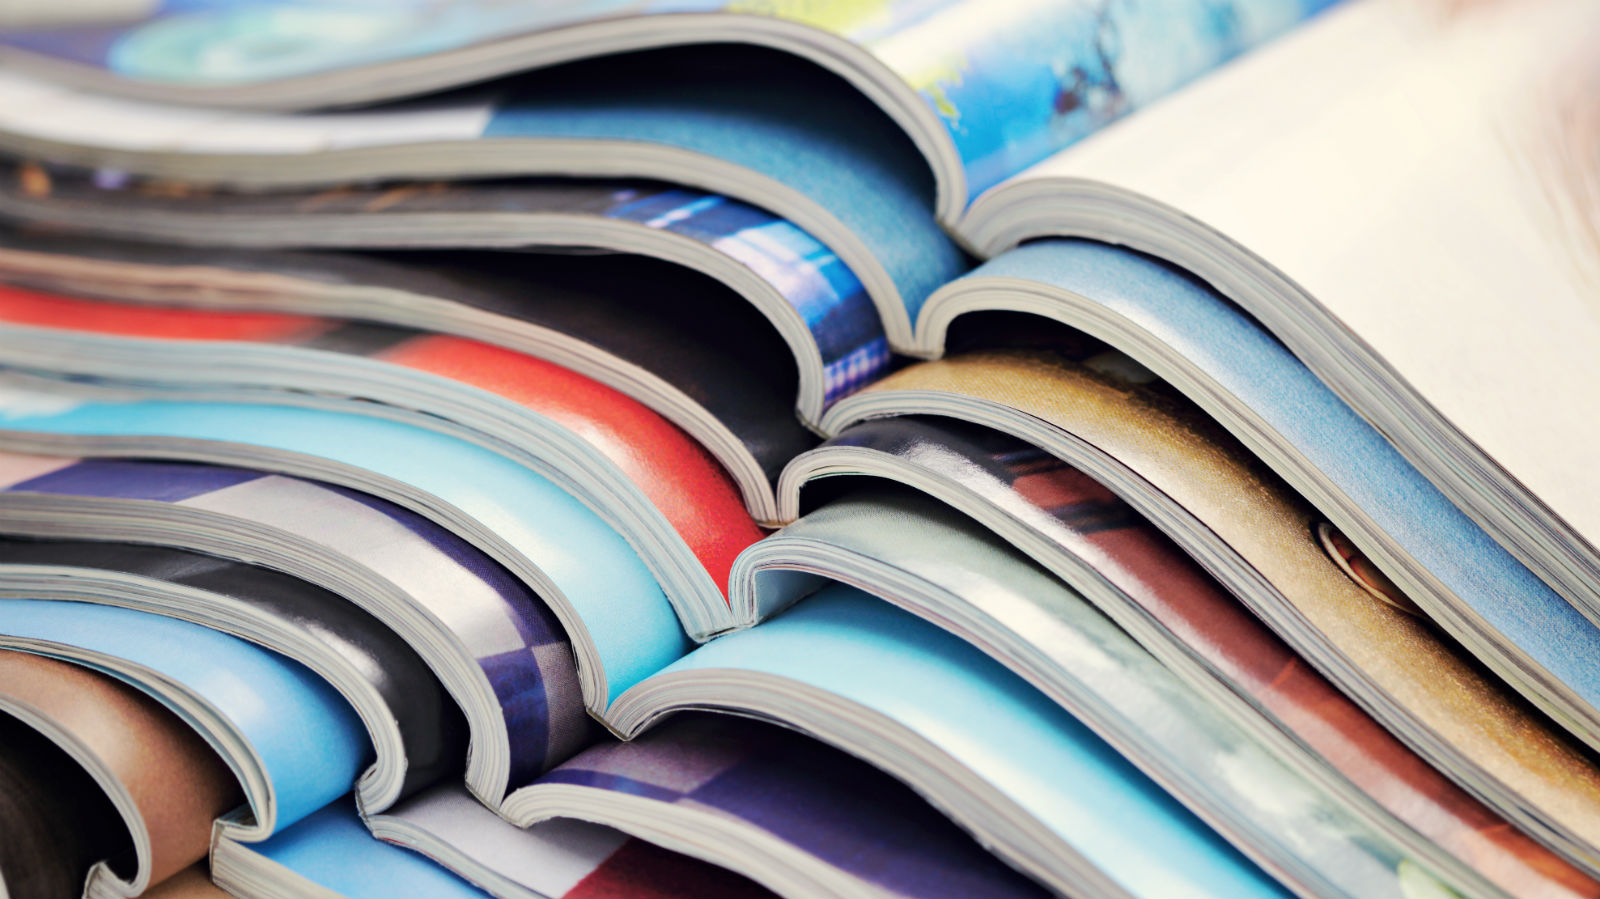 What Magazines Do You Still Subscribe To?